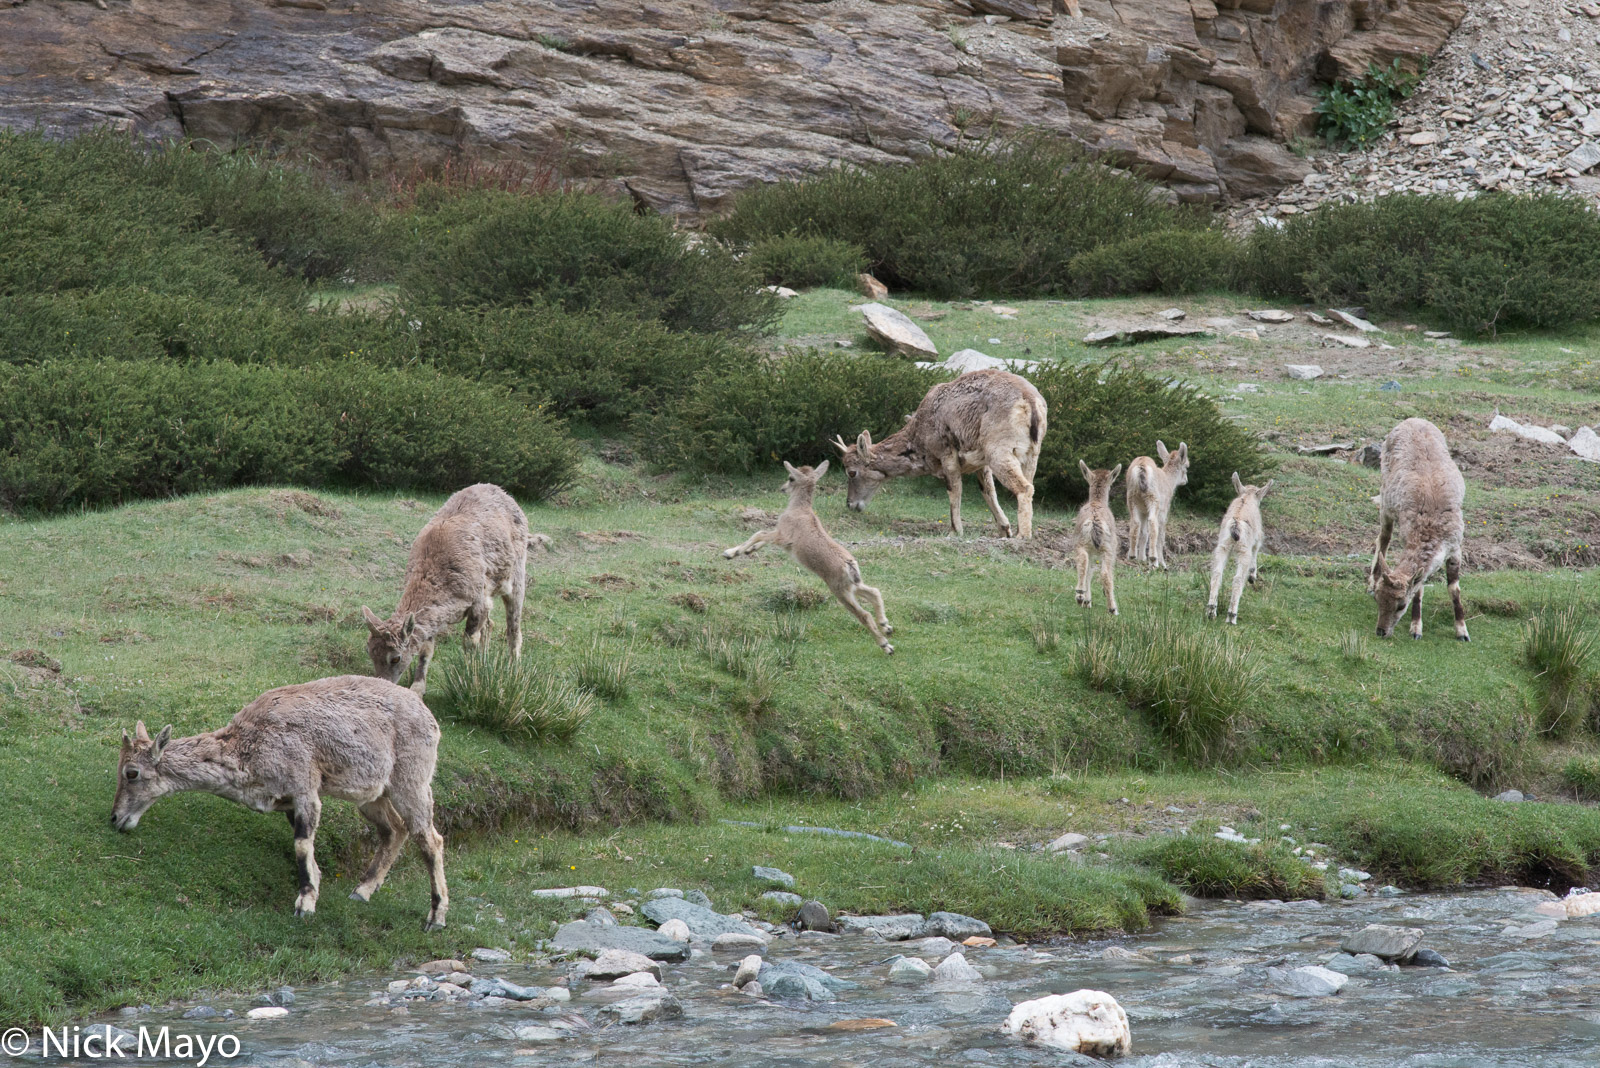 Deer, India, Jammu & Kashmir, photo